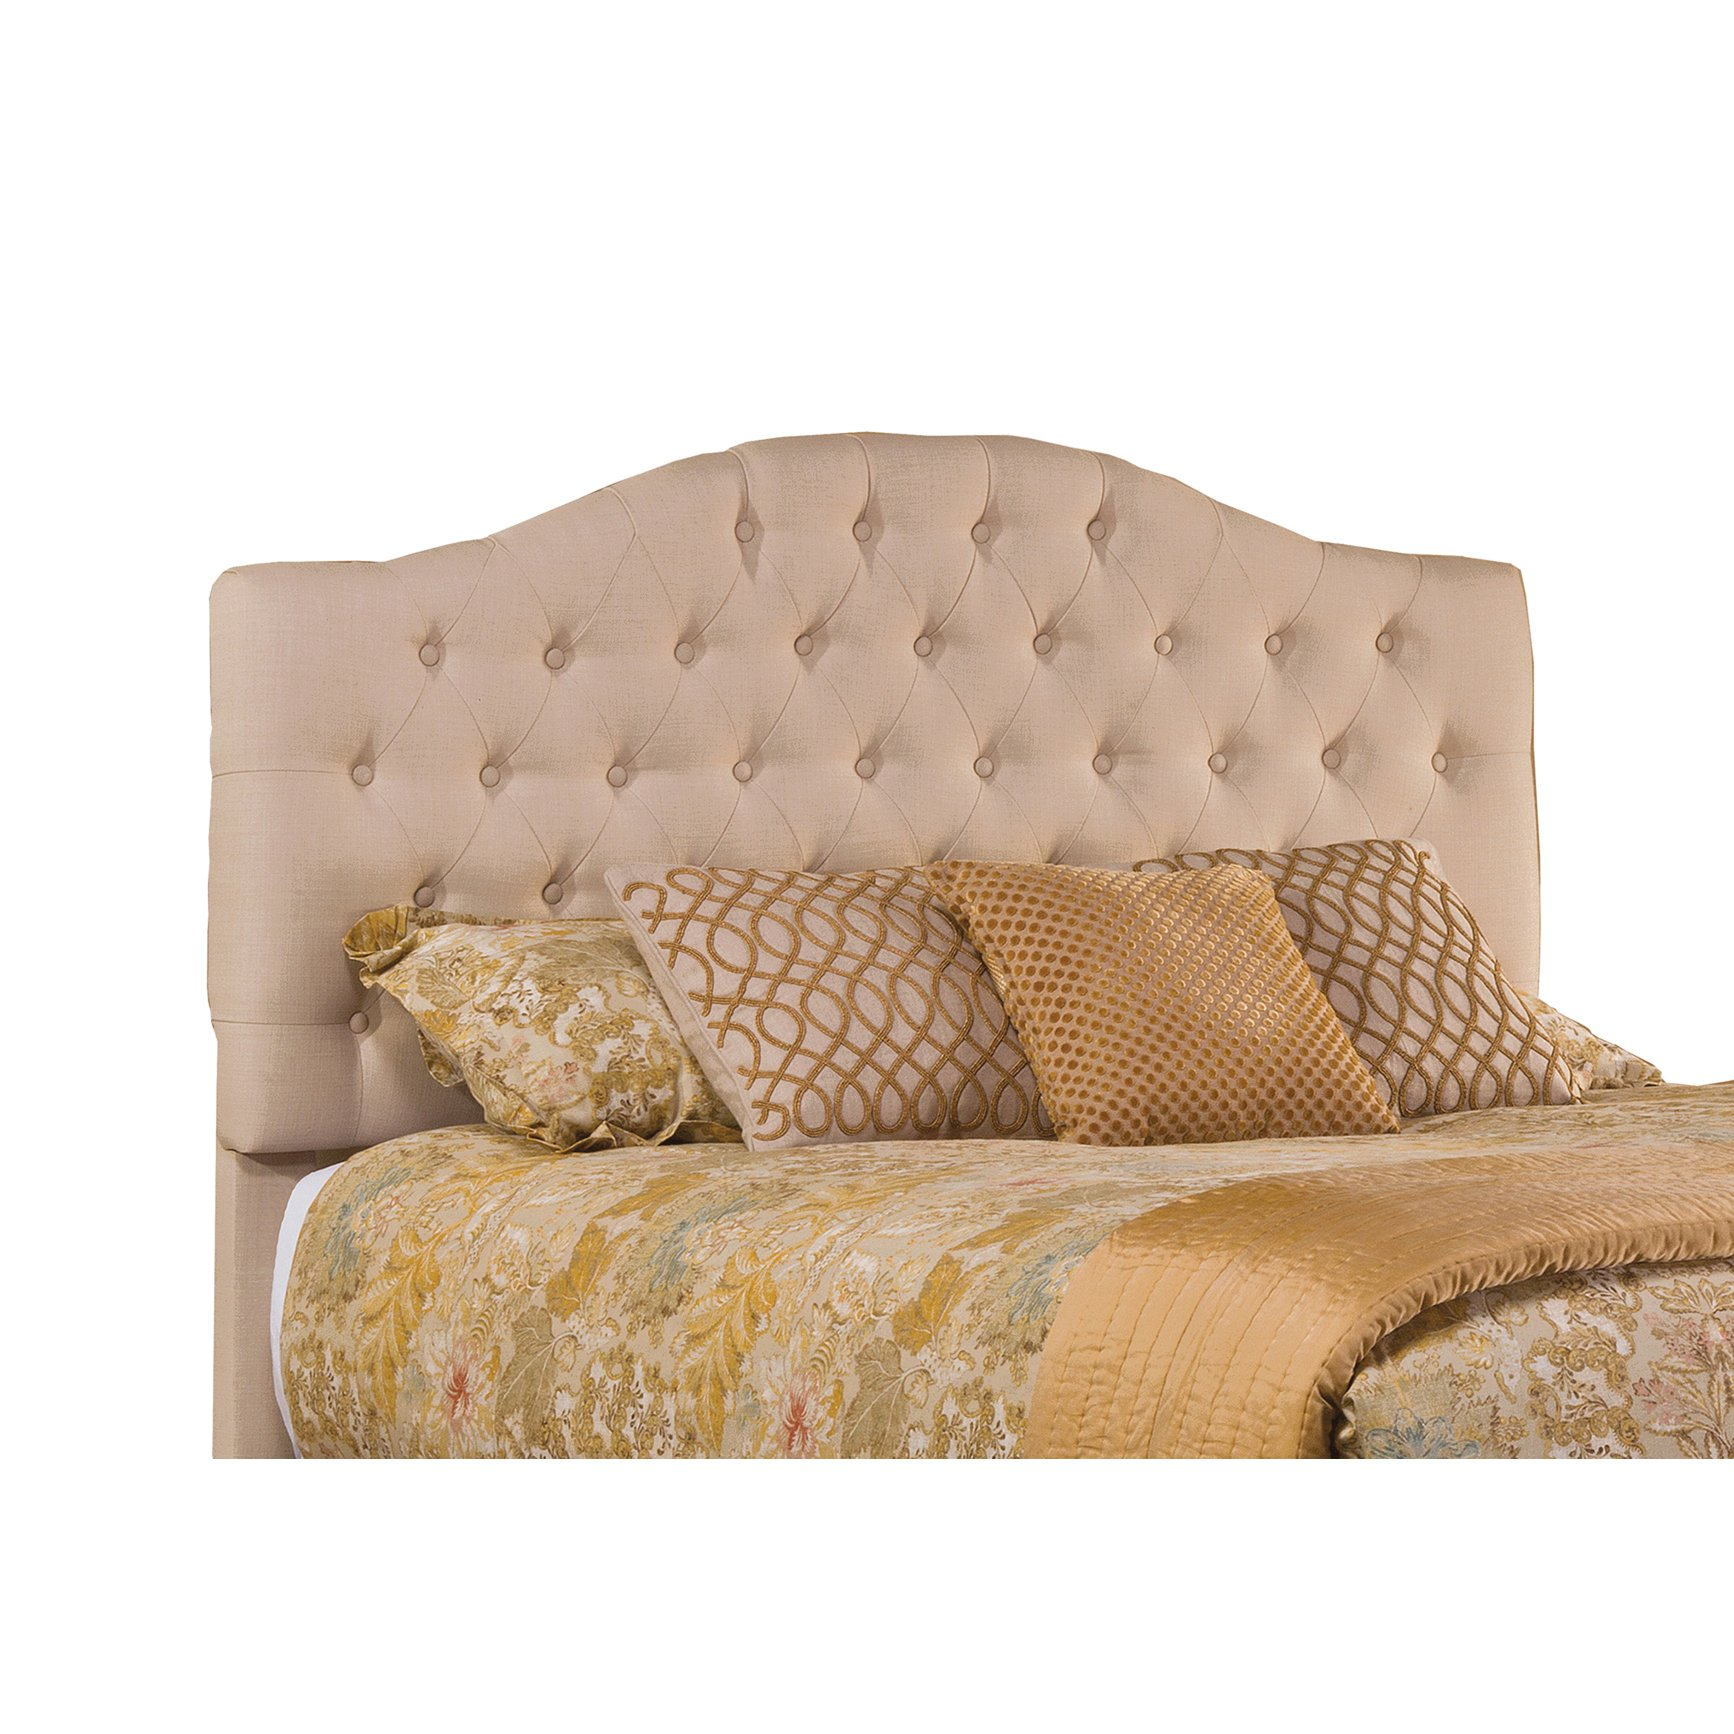 Hillsdale 1125HQR Upholstered Headboard with Frame, Queen, Linen Beige